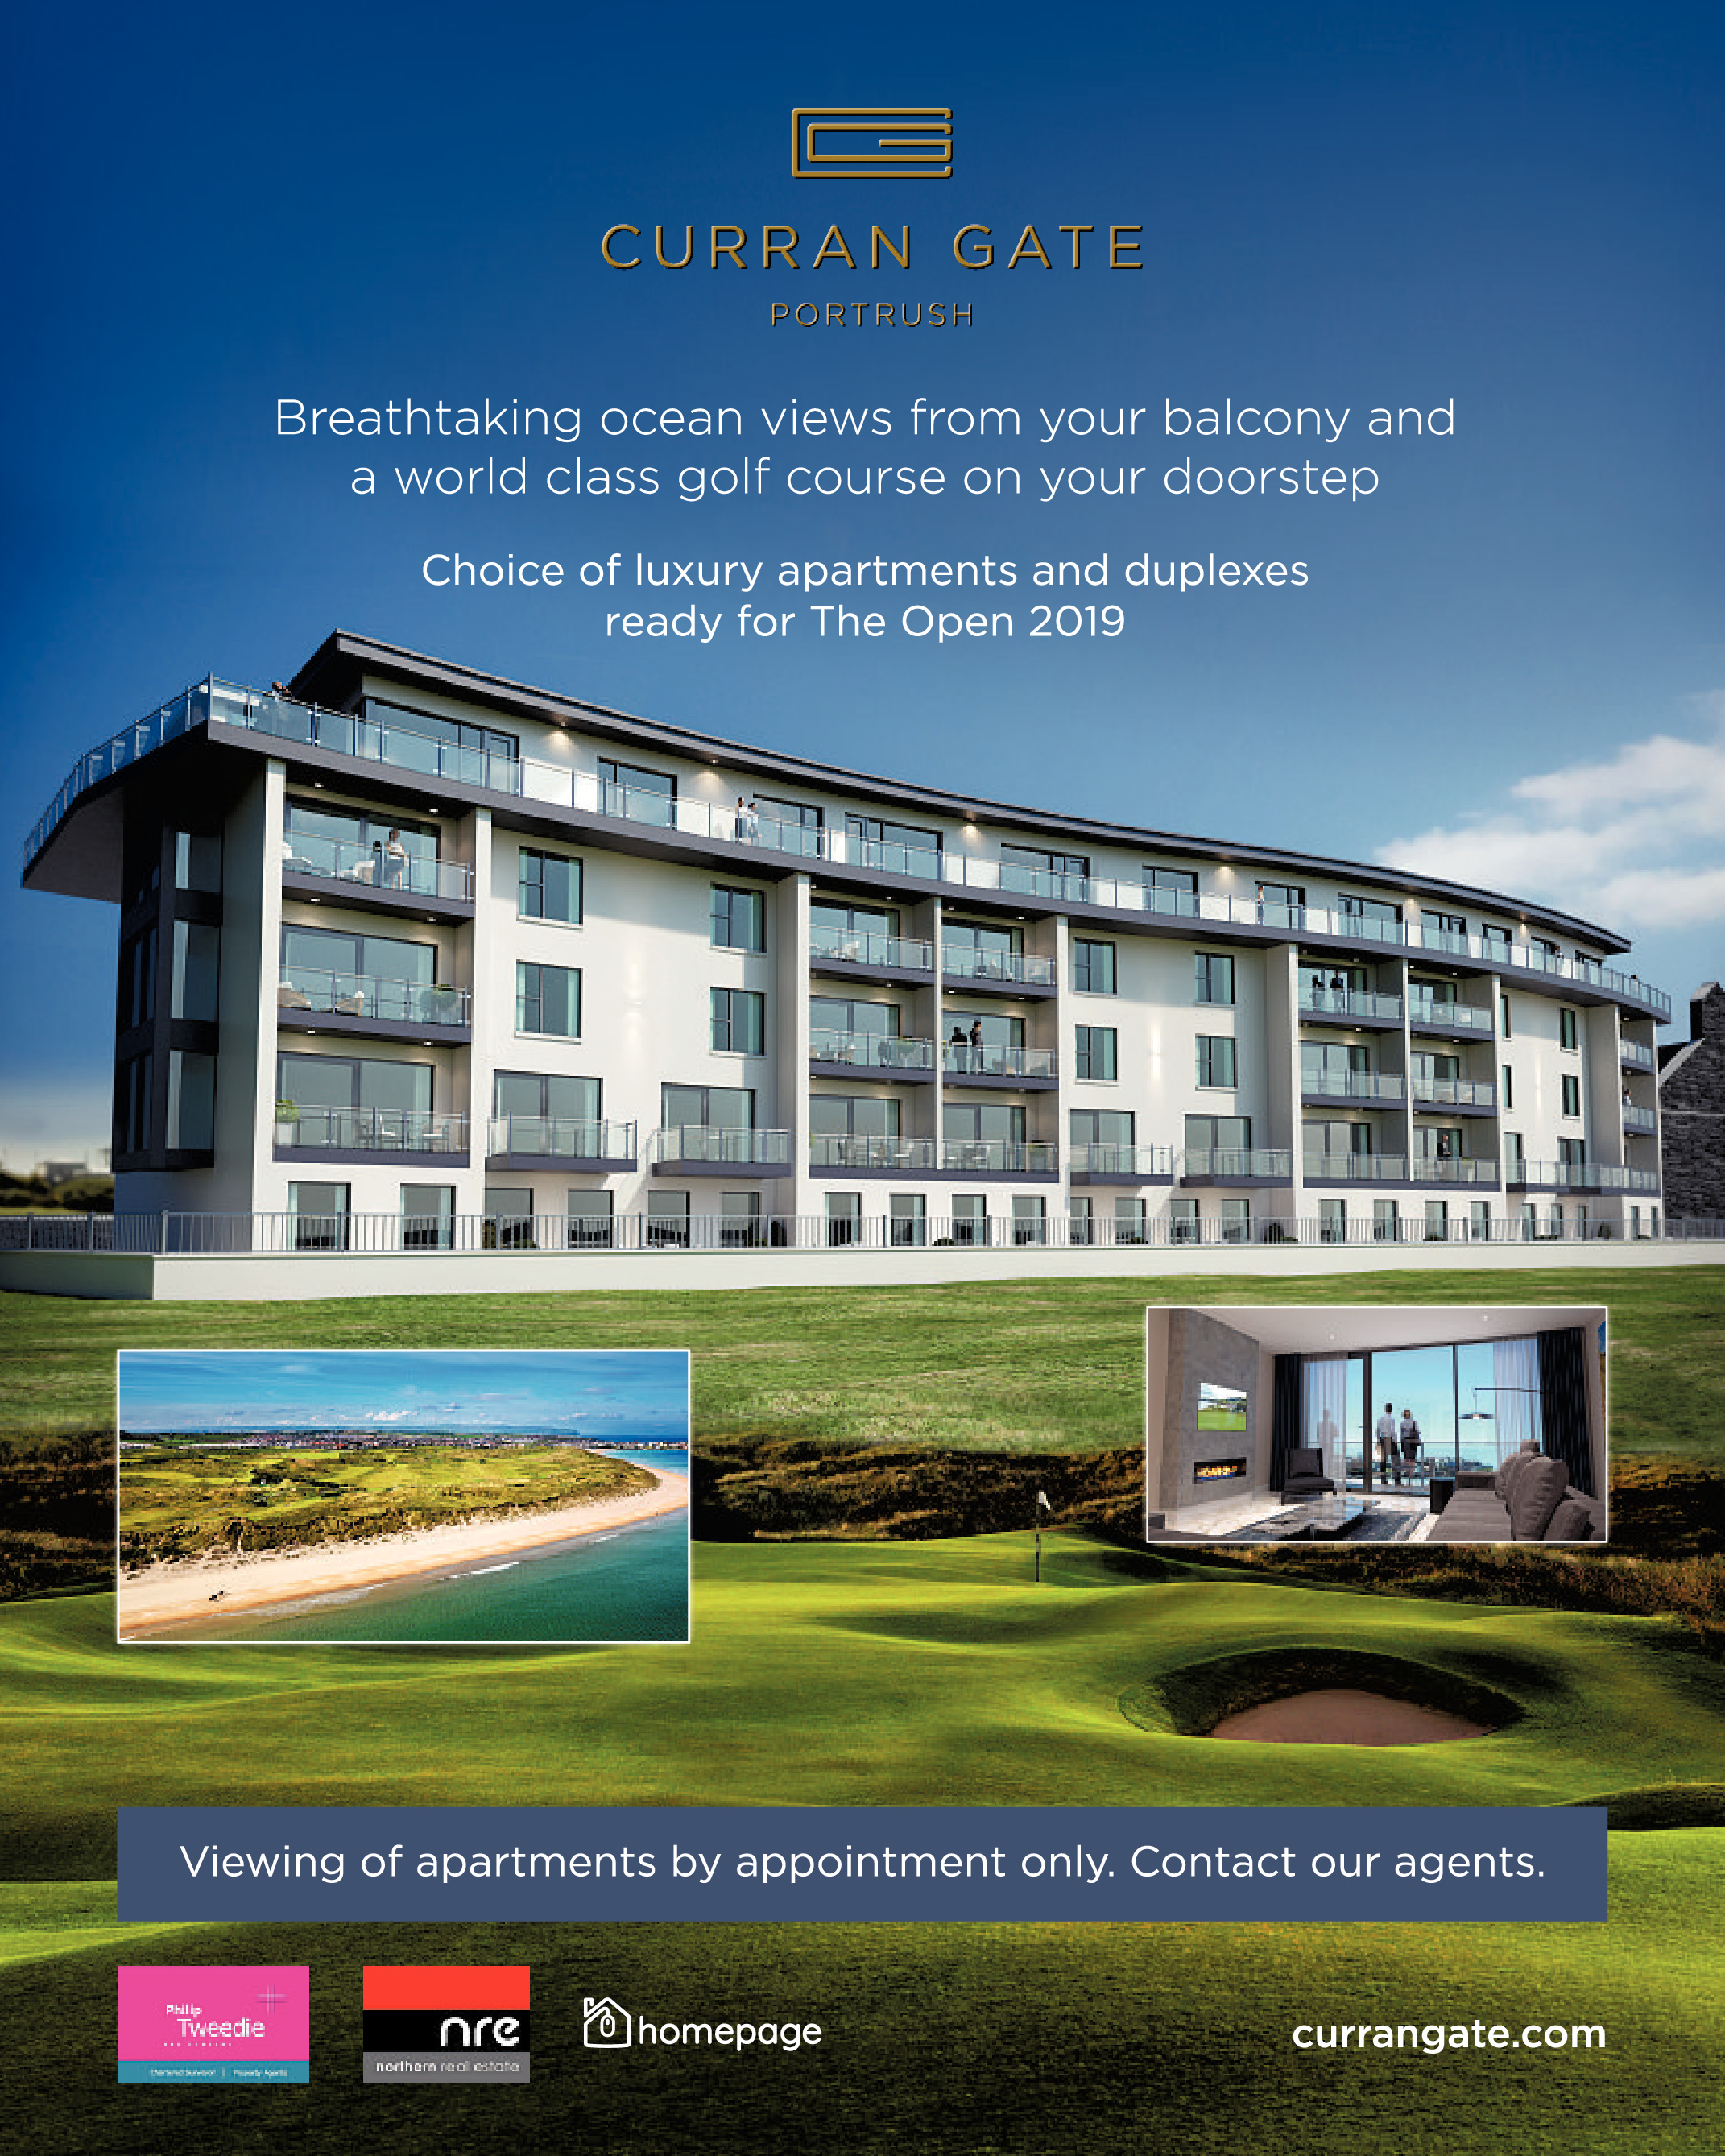 Curran Gate Portrush Apartments - Holiday Homes Available For Rent in Northern Ireland